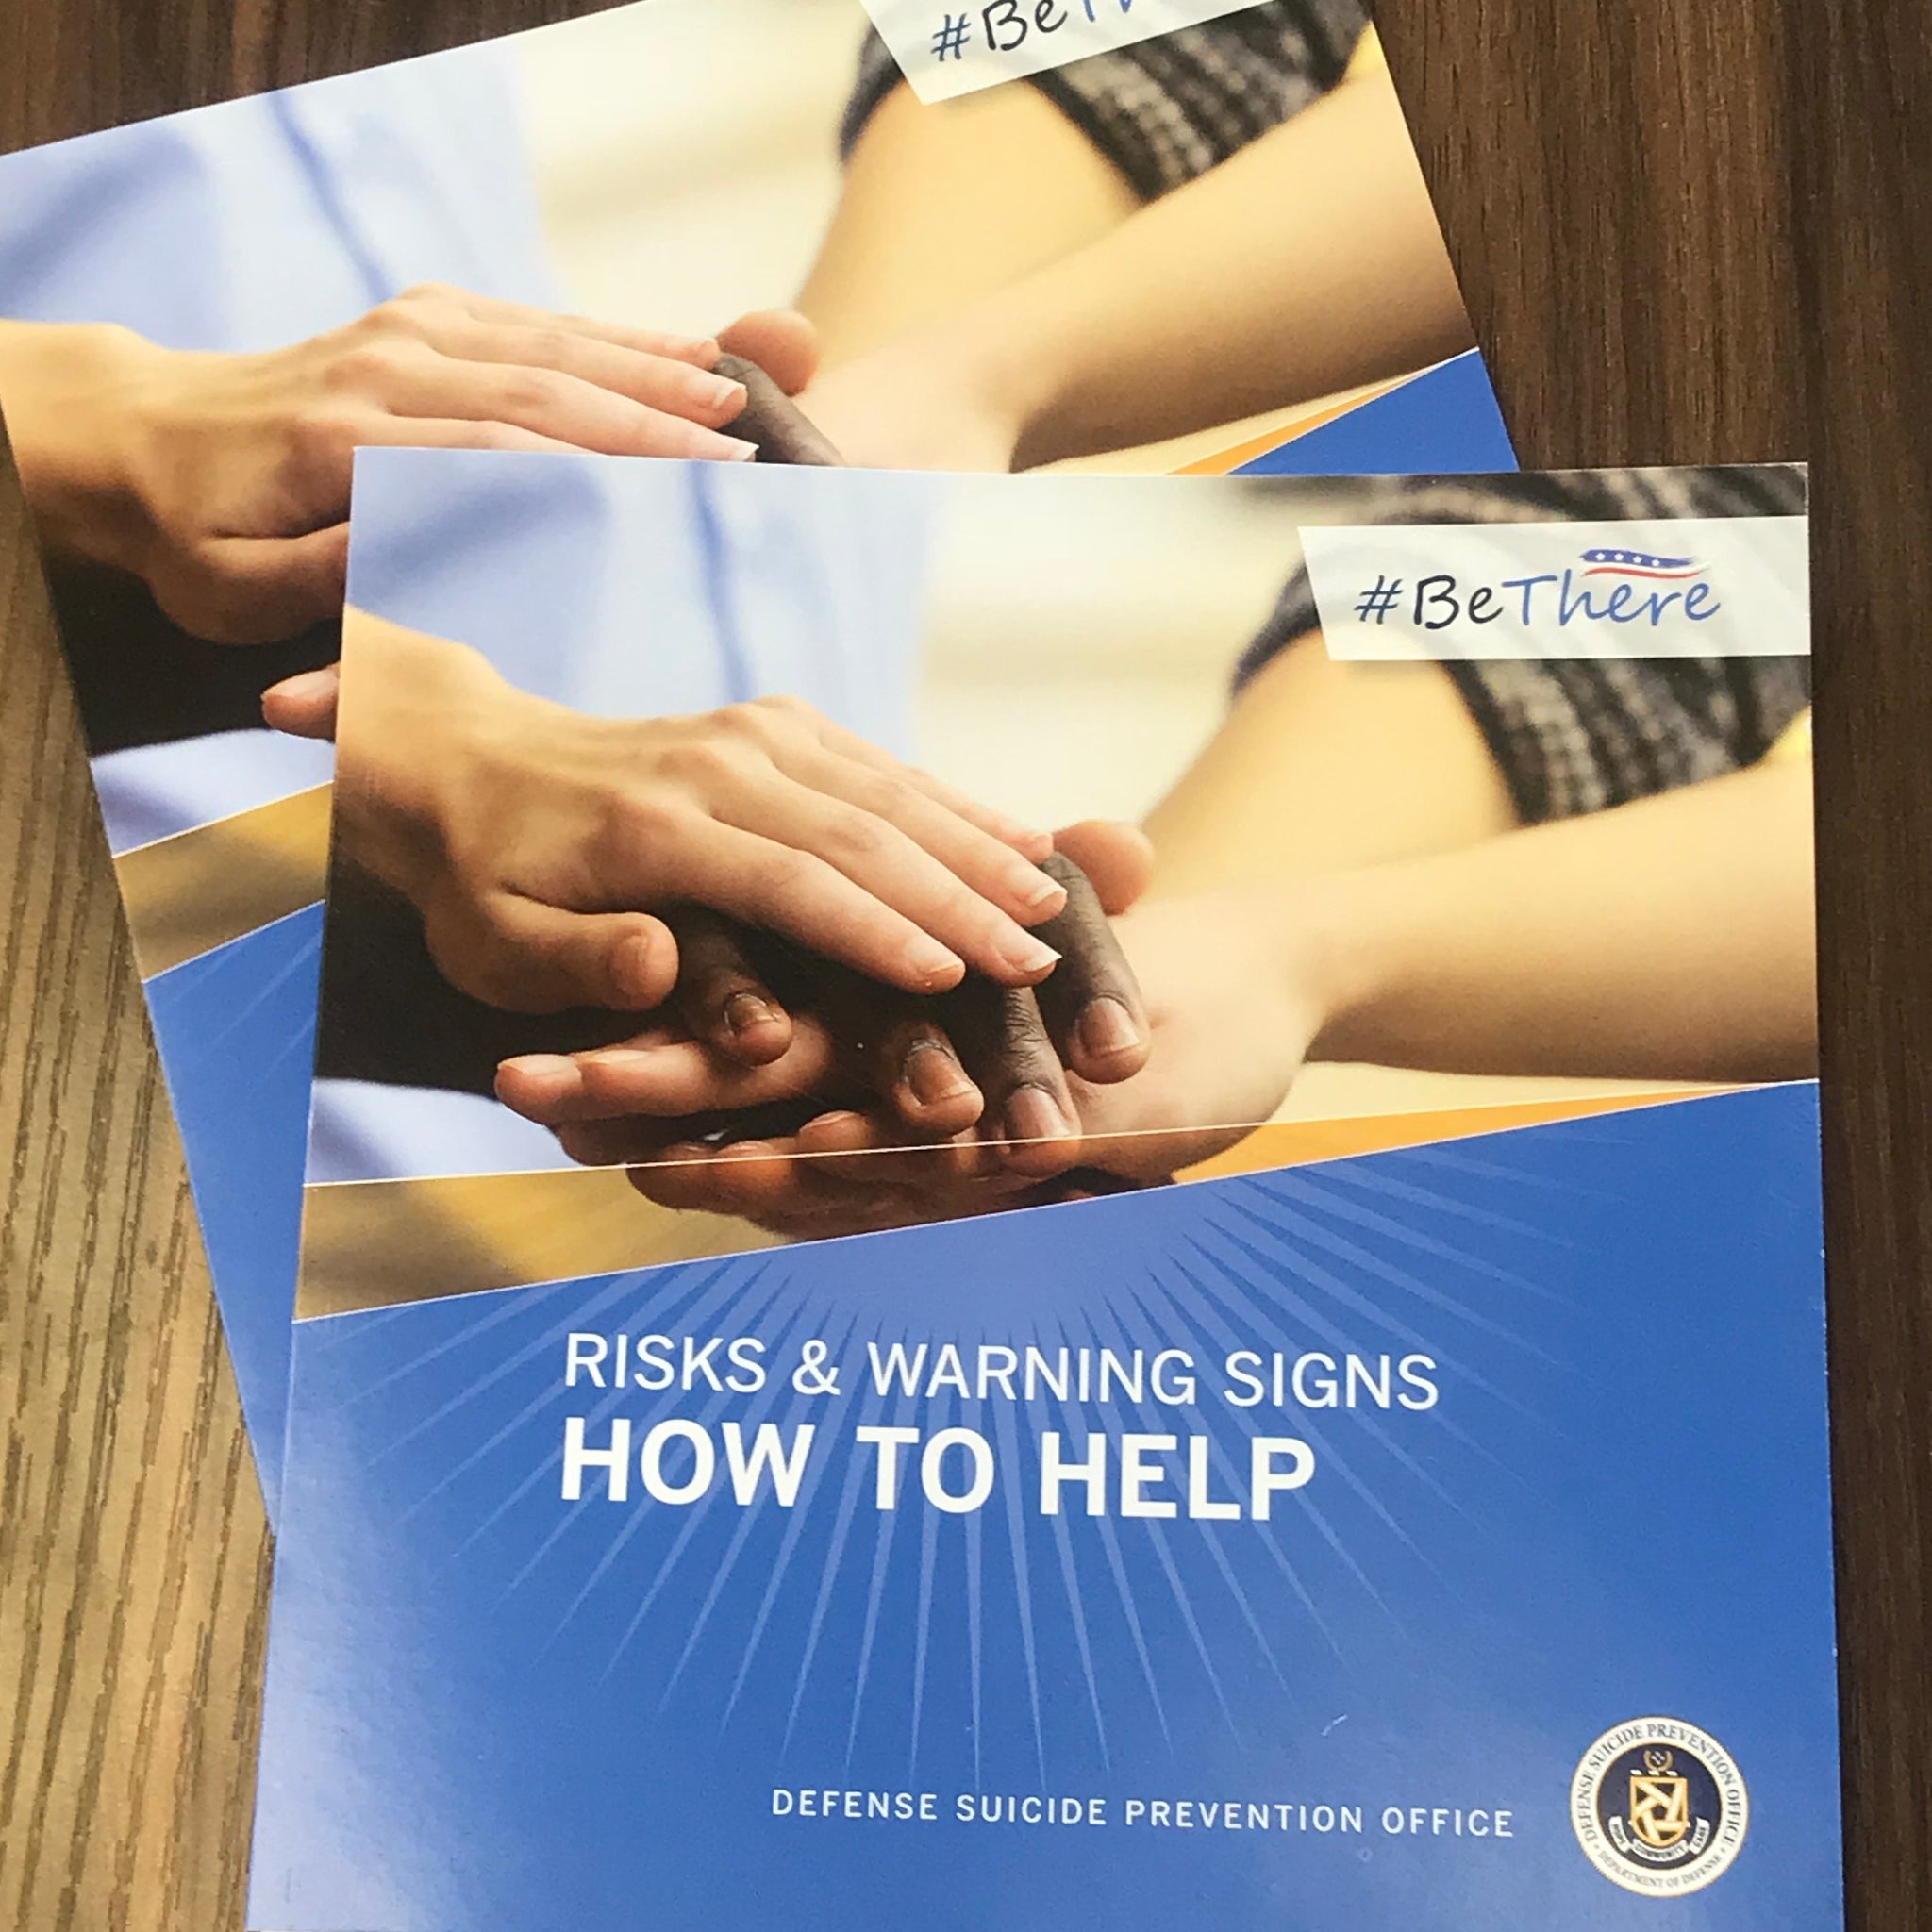 How to Help Brochure - Digital Download